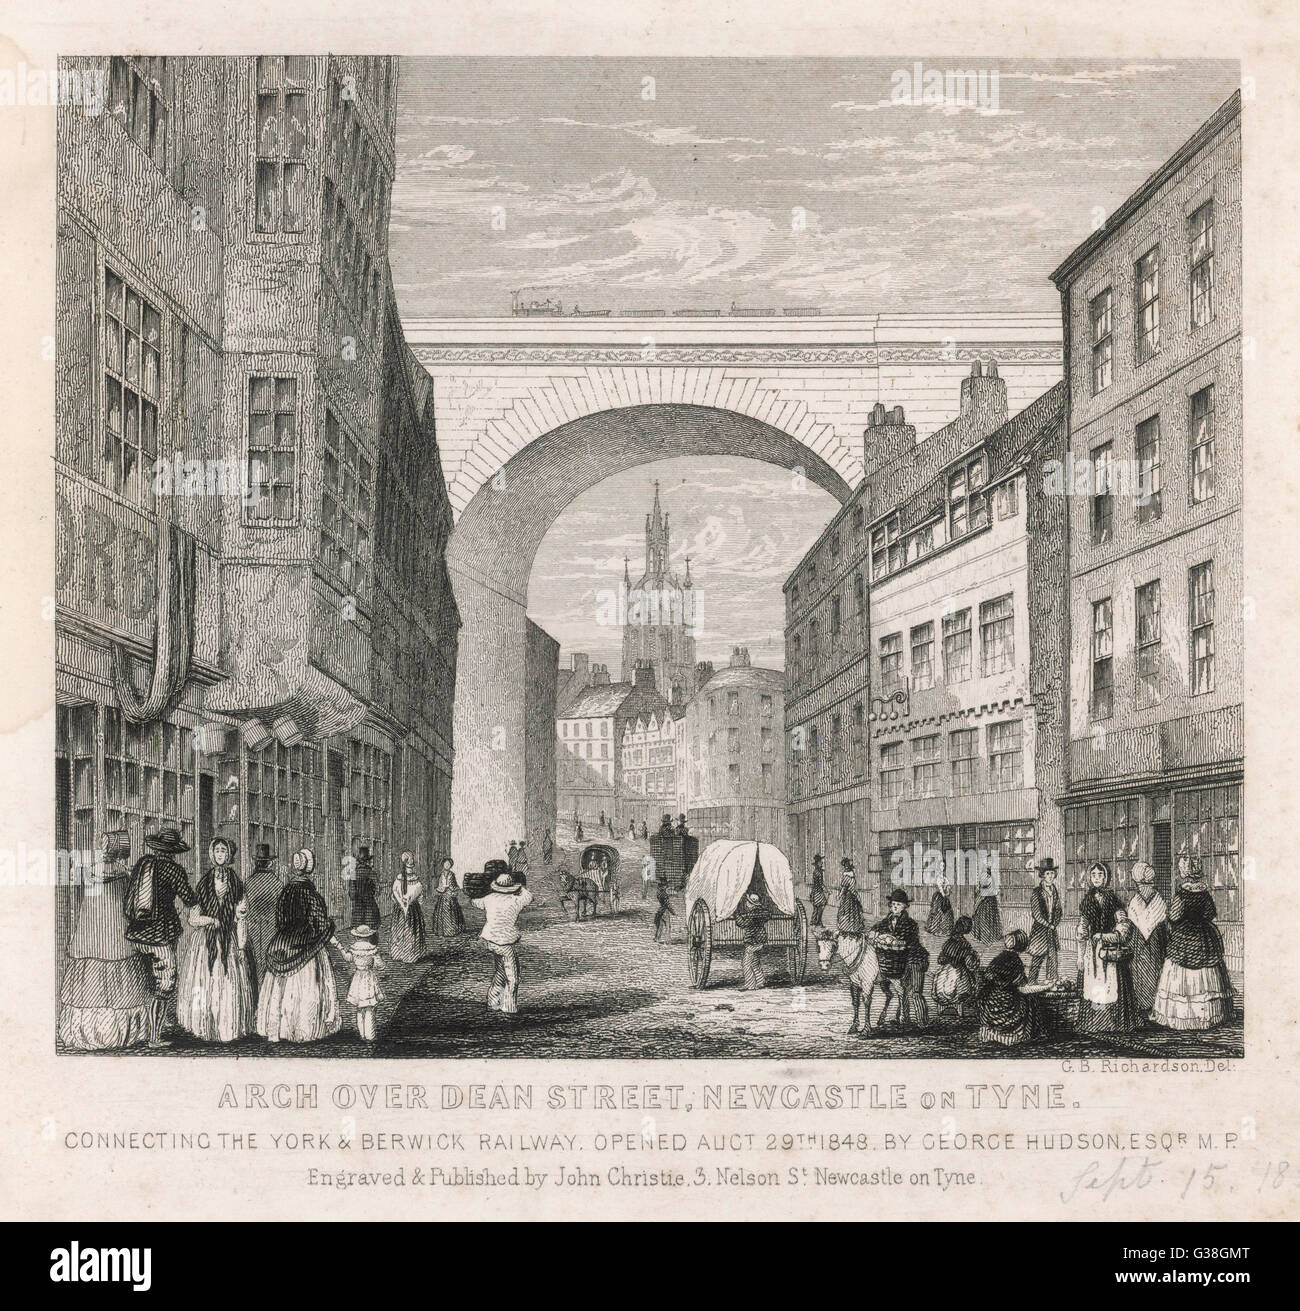 The railway arch over Dean  Street, Newcastle upon Tyne,  connecting the York and  Berwick railway. It was opened - Stock Image